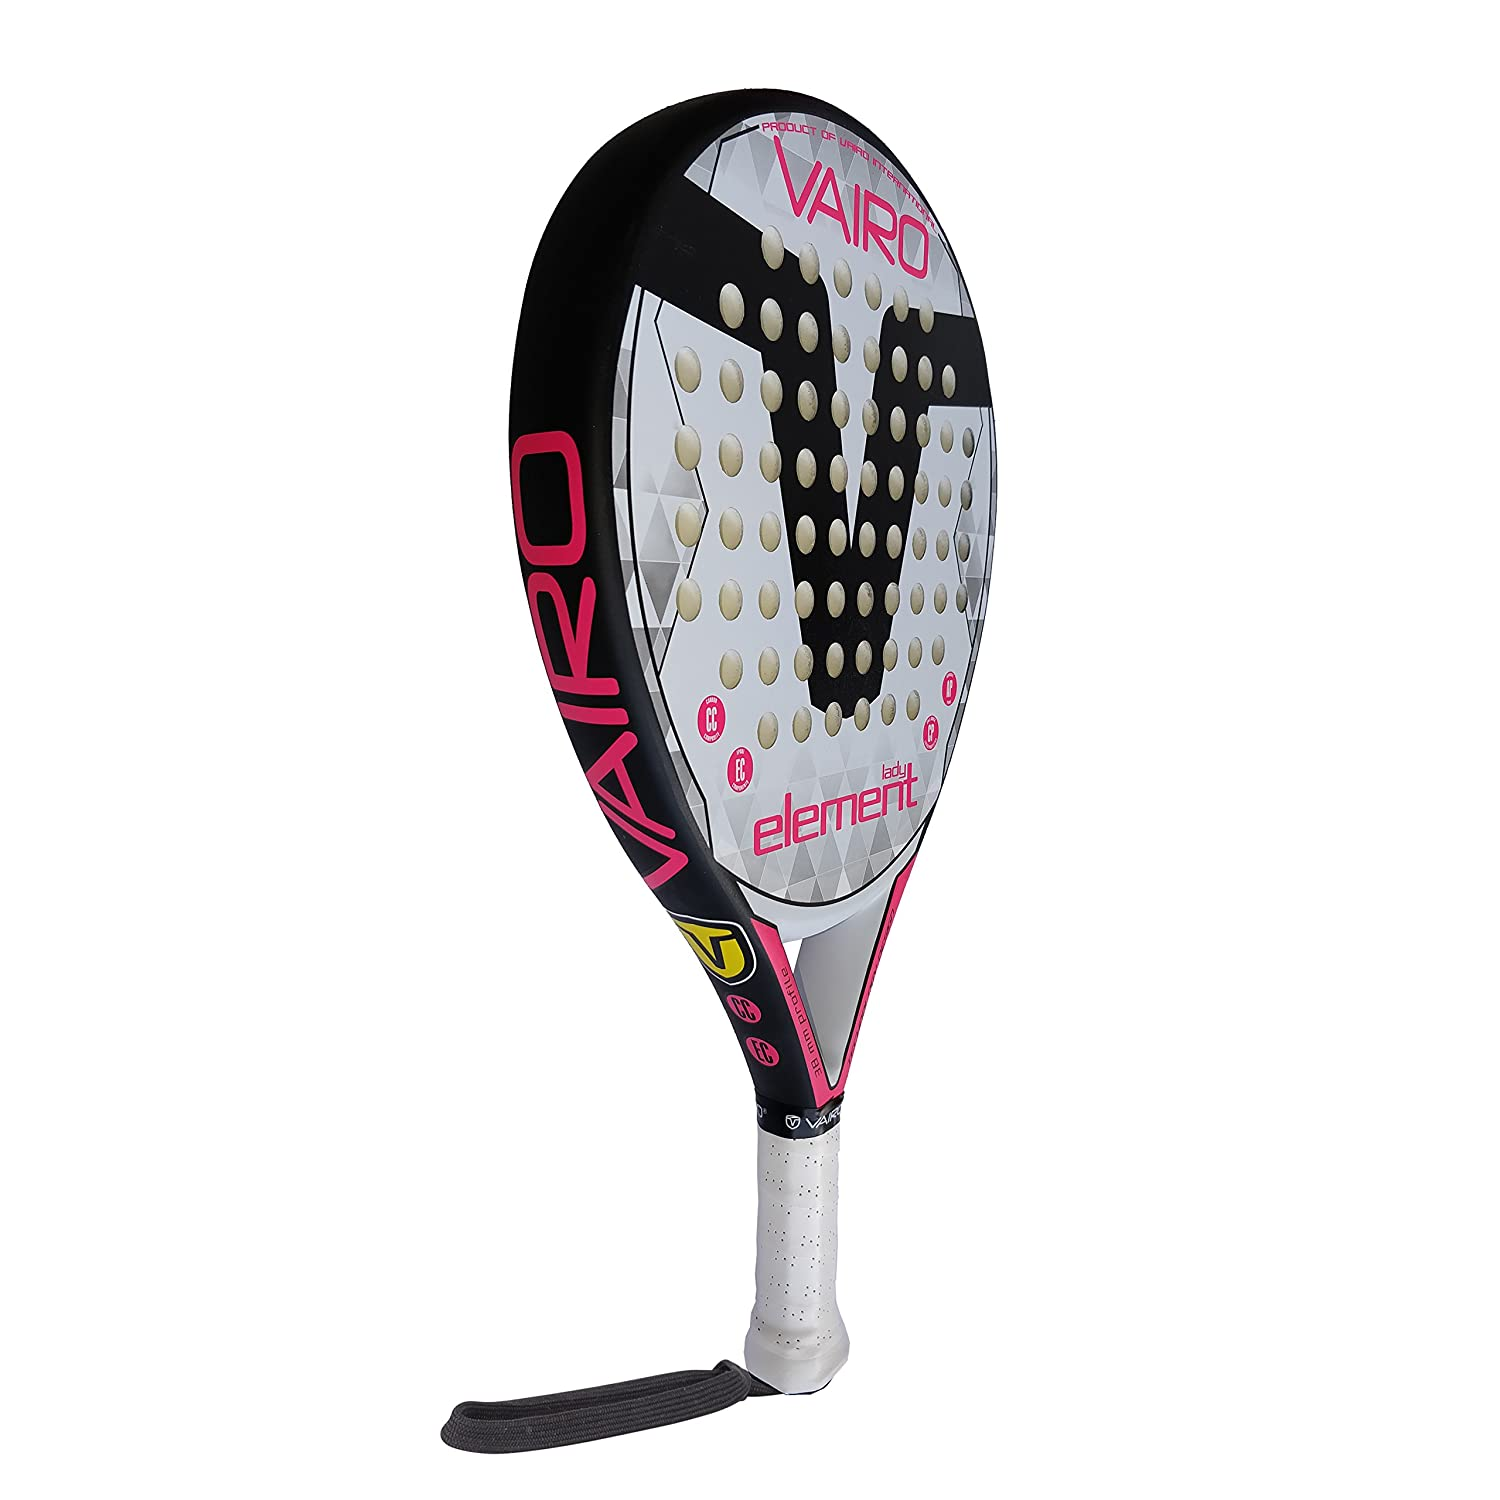 VAIRO Pala de Padel Element Lady 5.1: Amazon.es: Deportes y aire libre